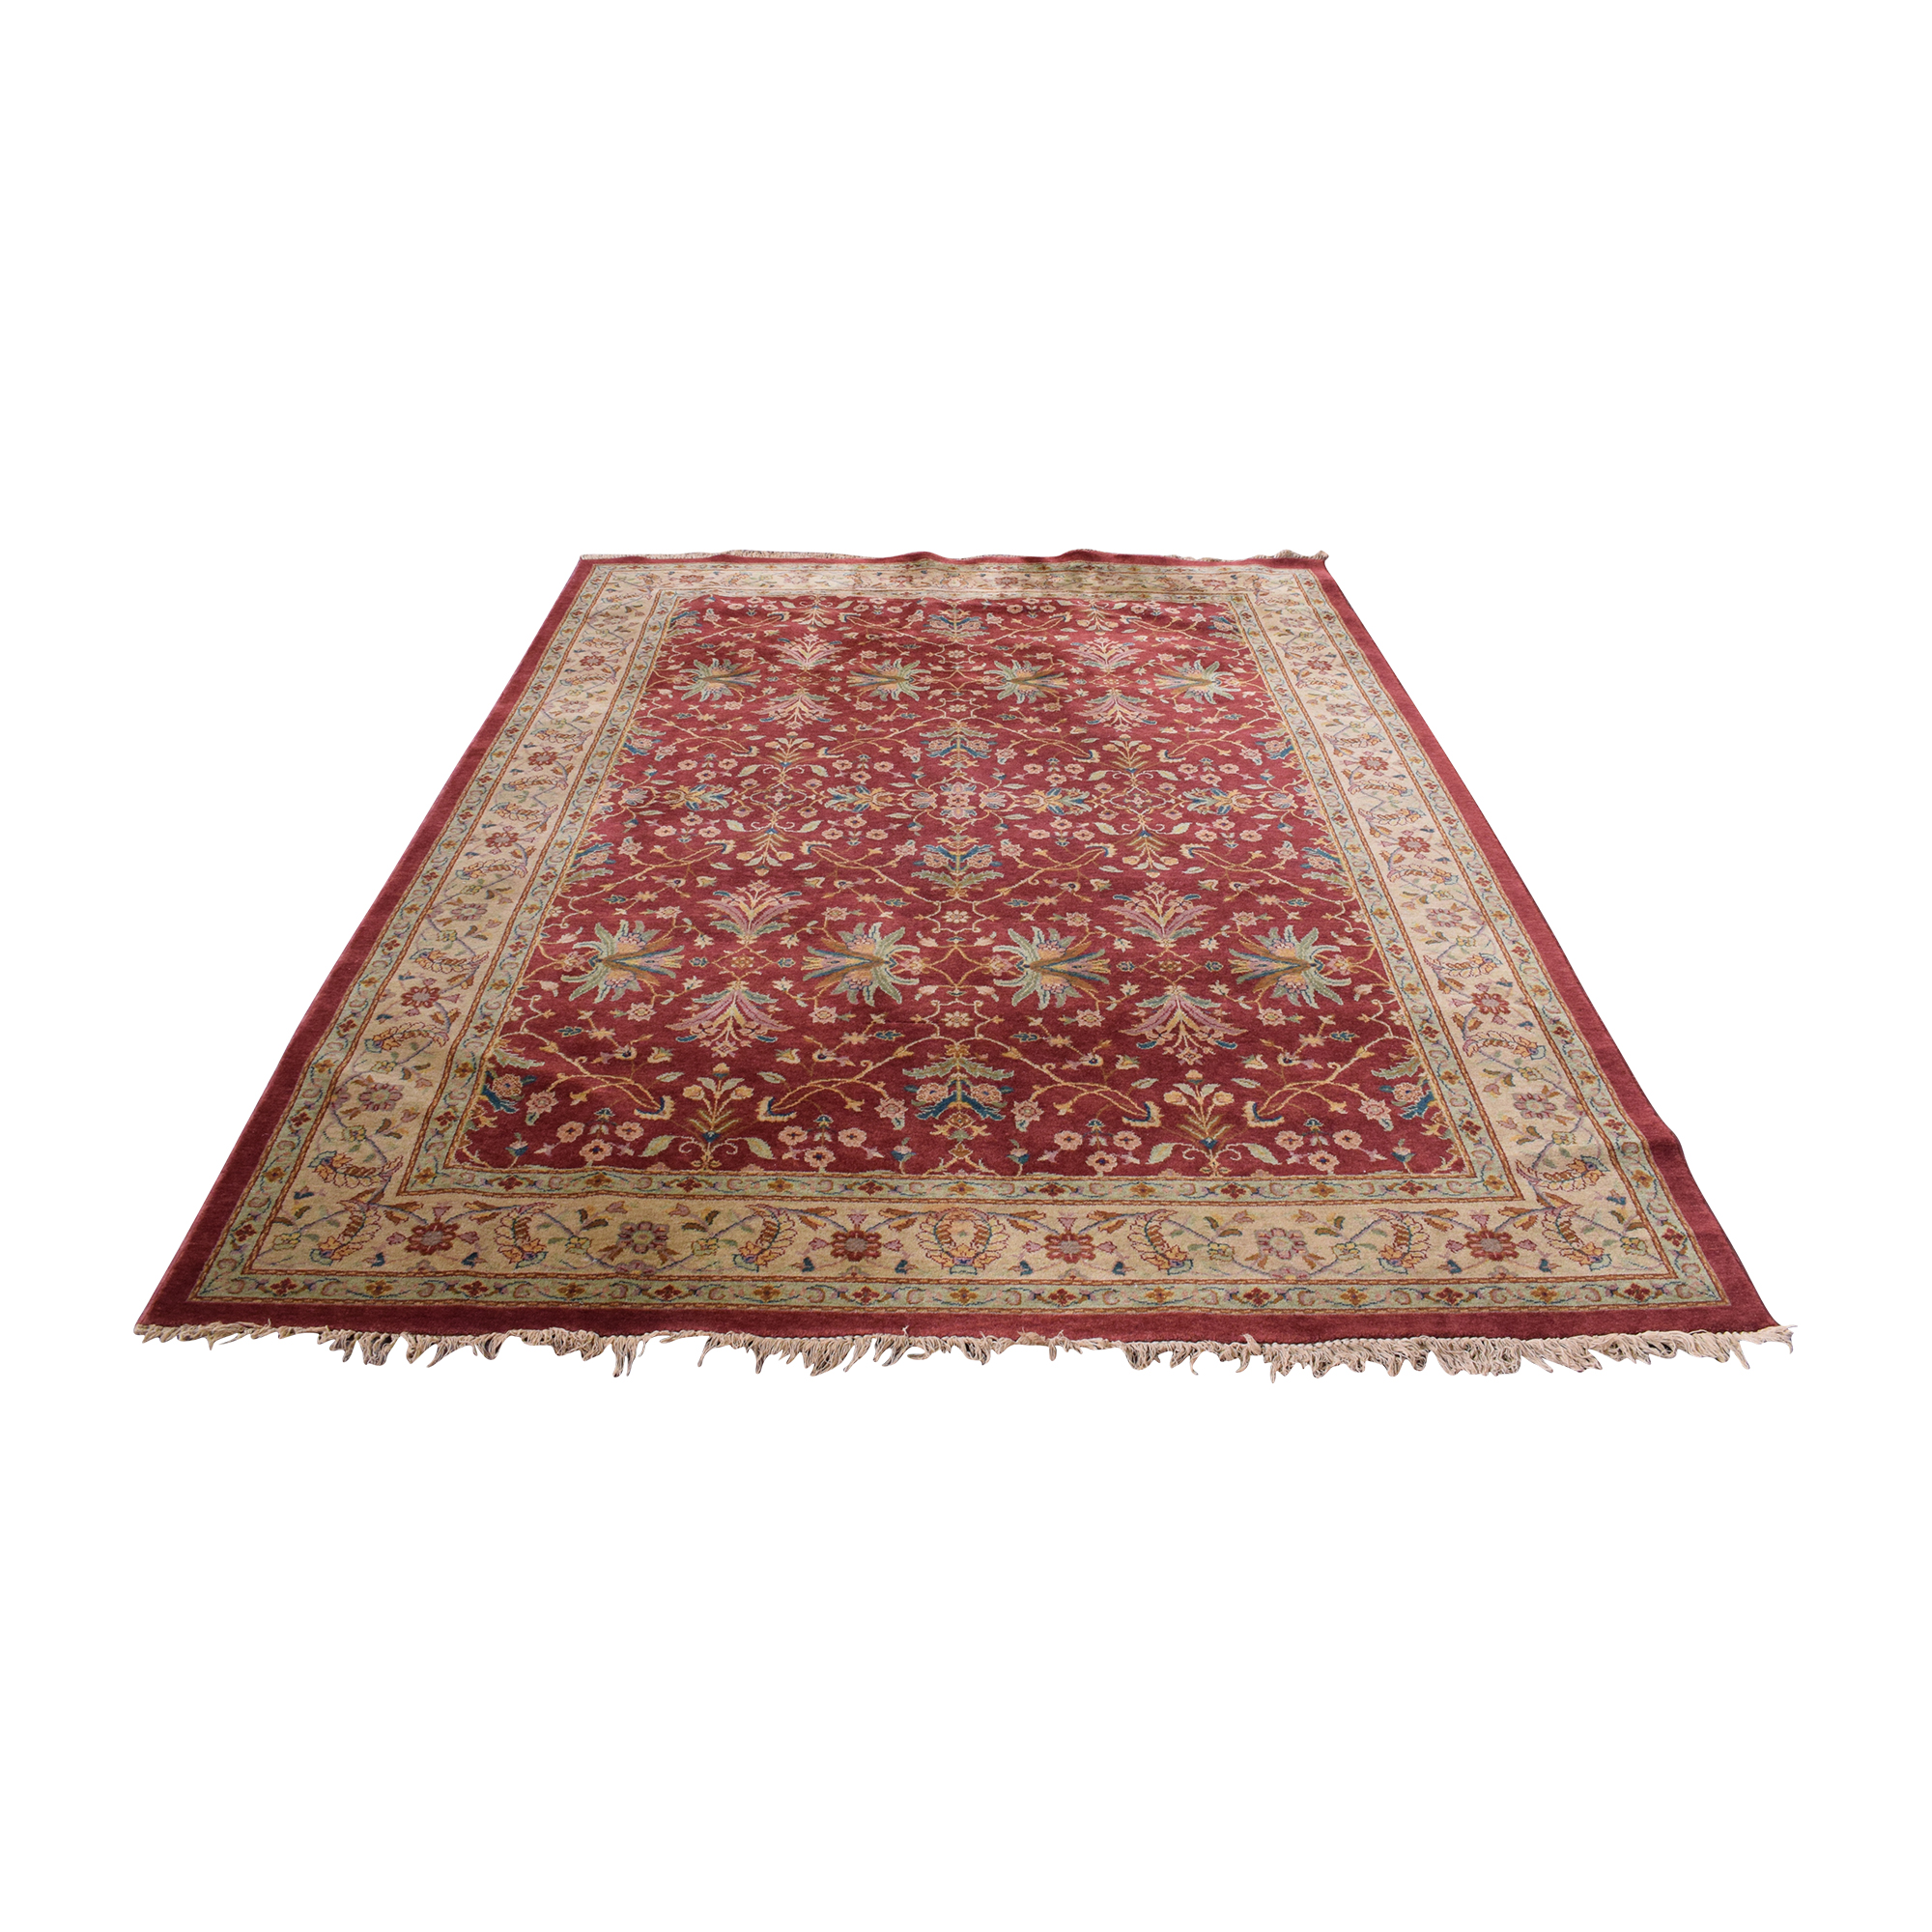 Ethan Allen Ethan Allen Antique Traditions Area Rug